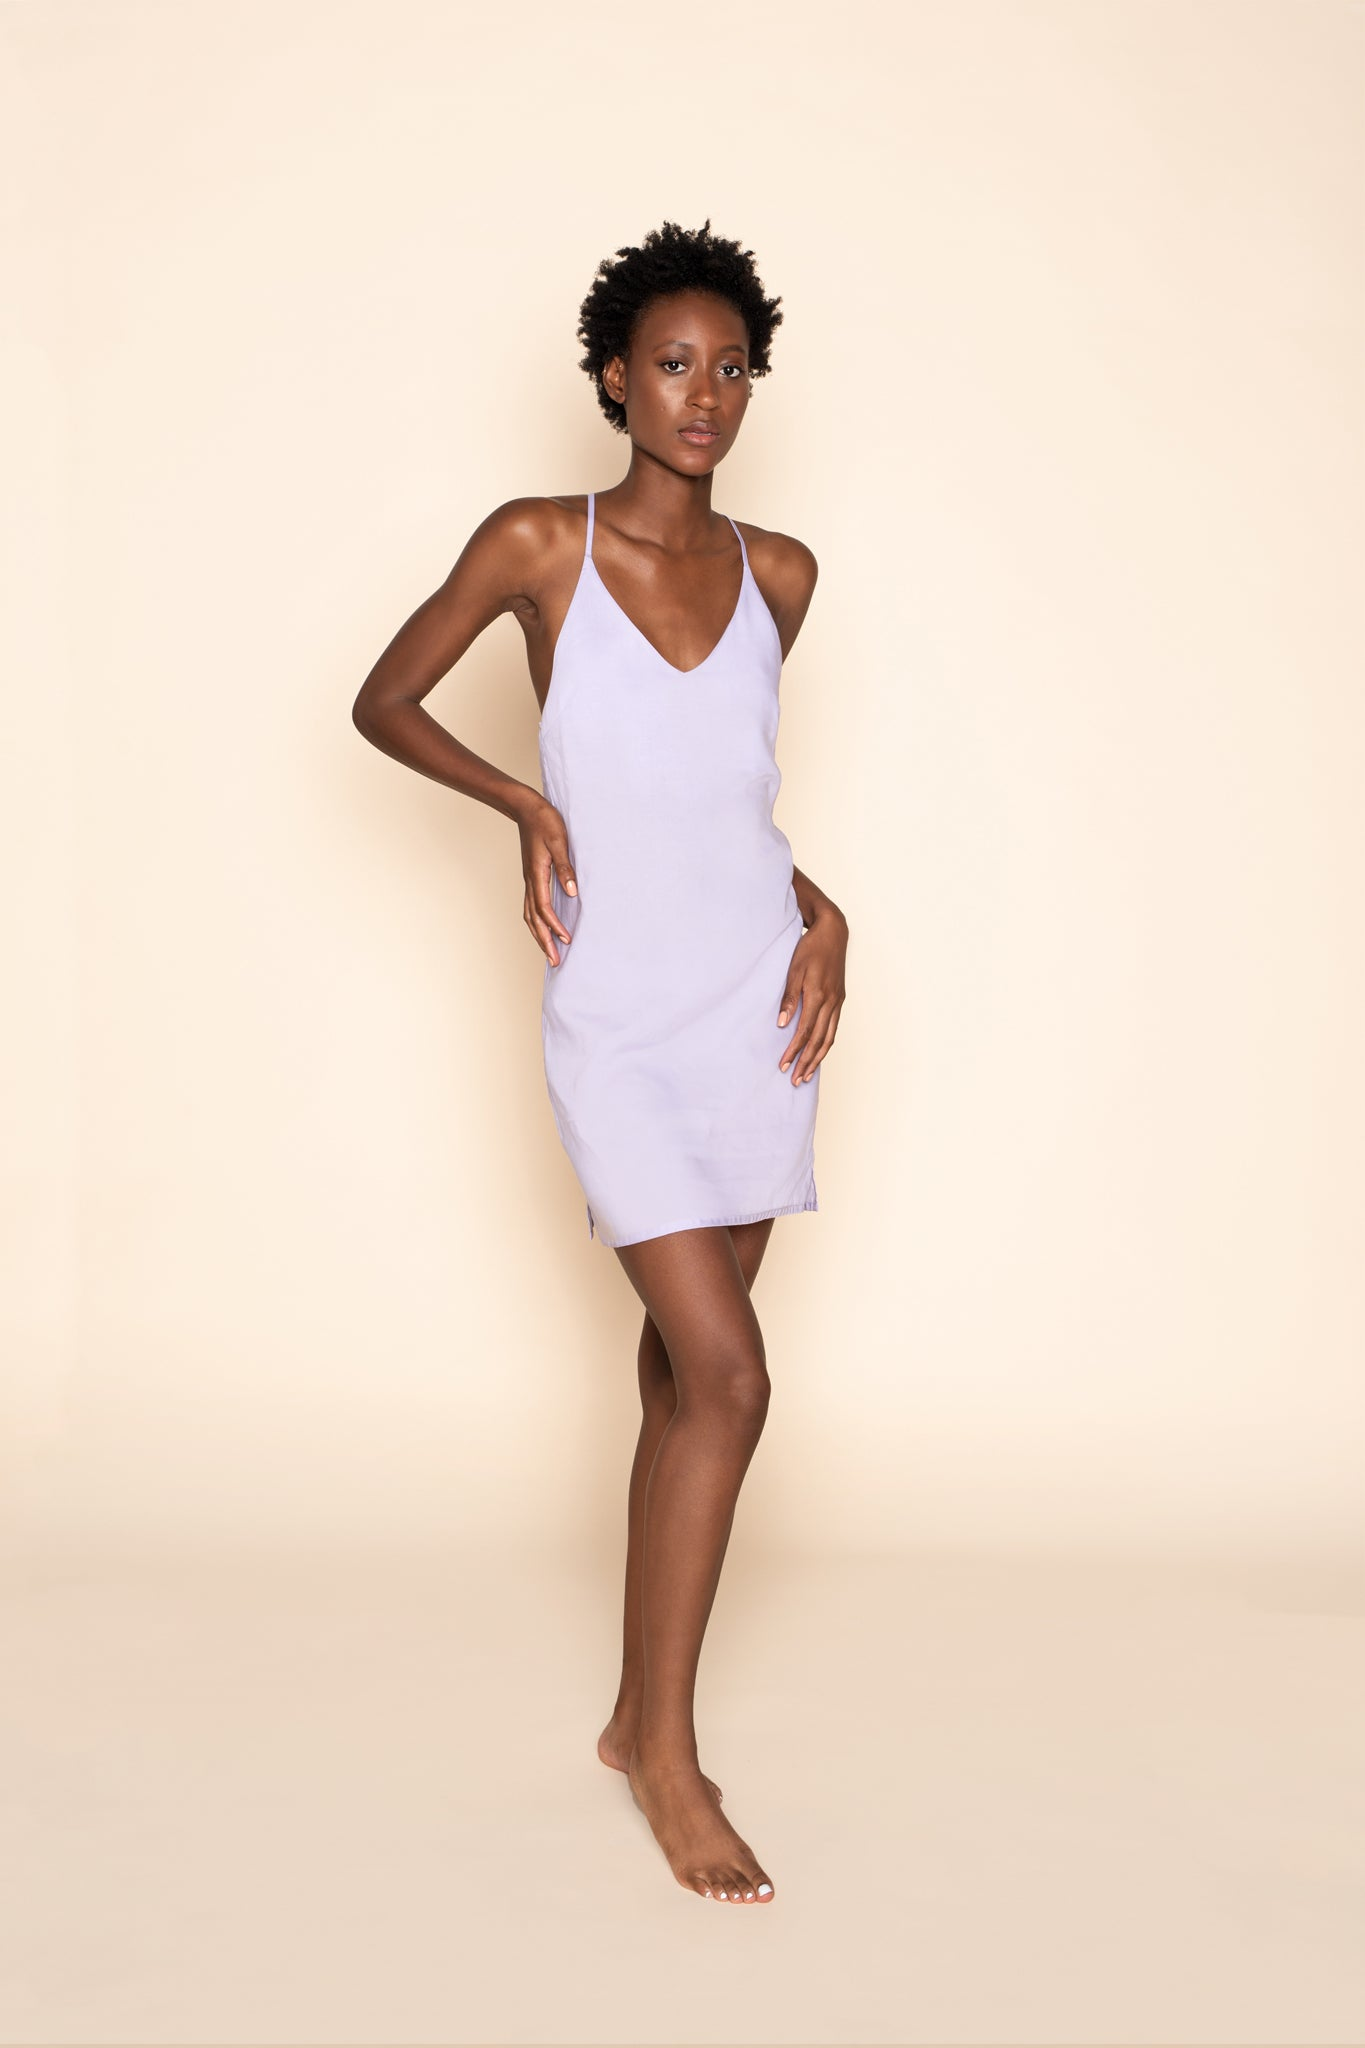 Slip dress - Lavender Love